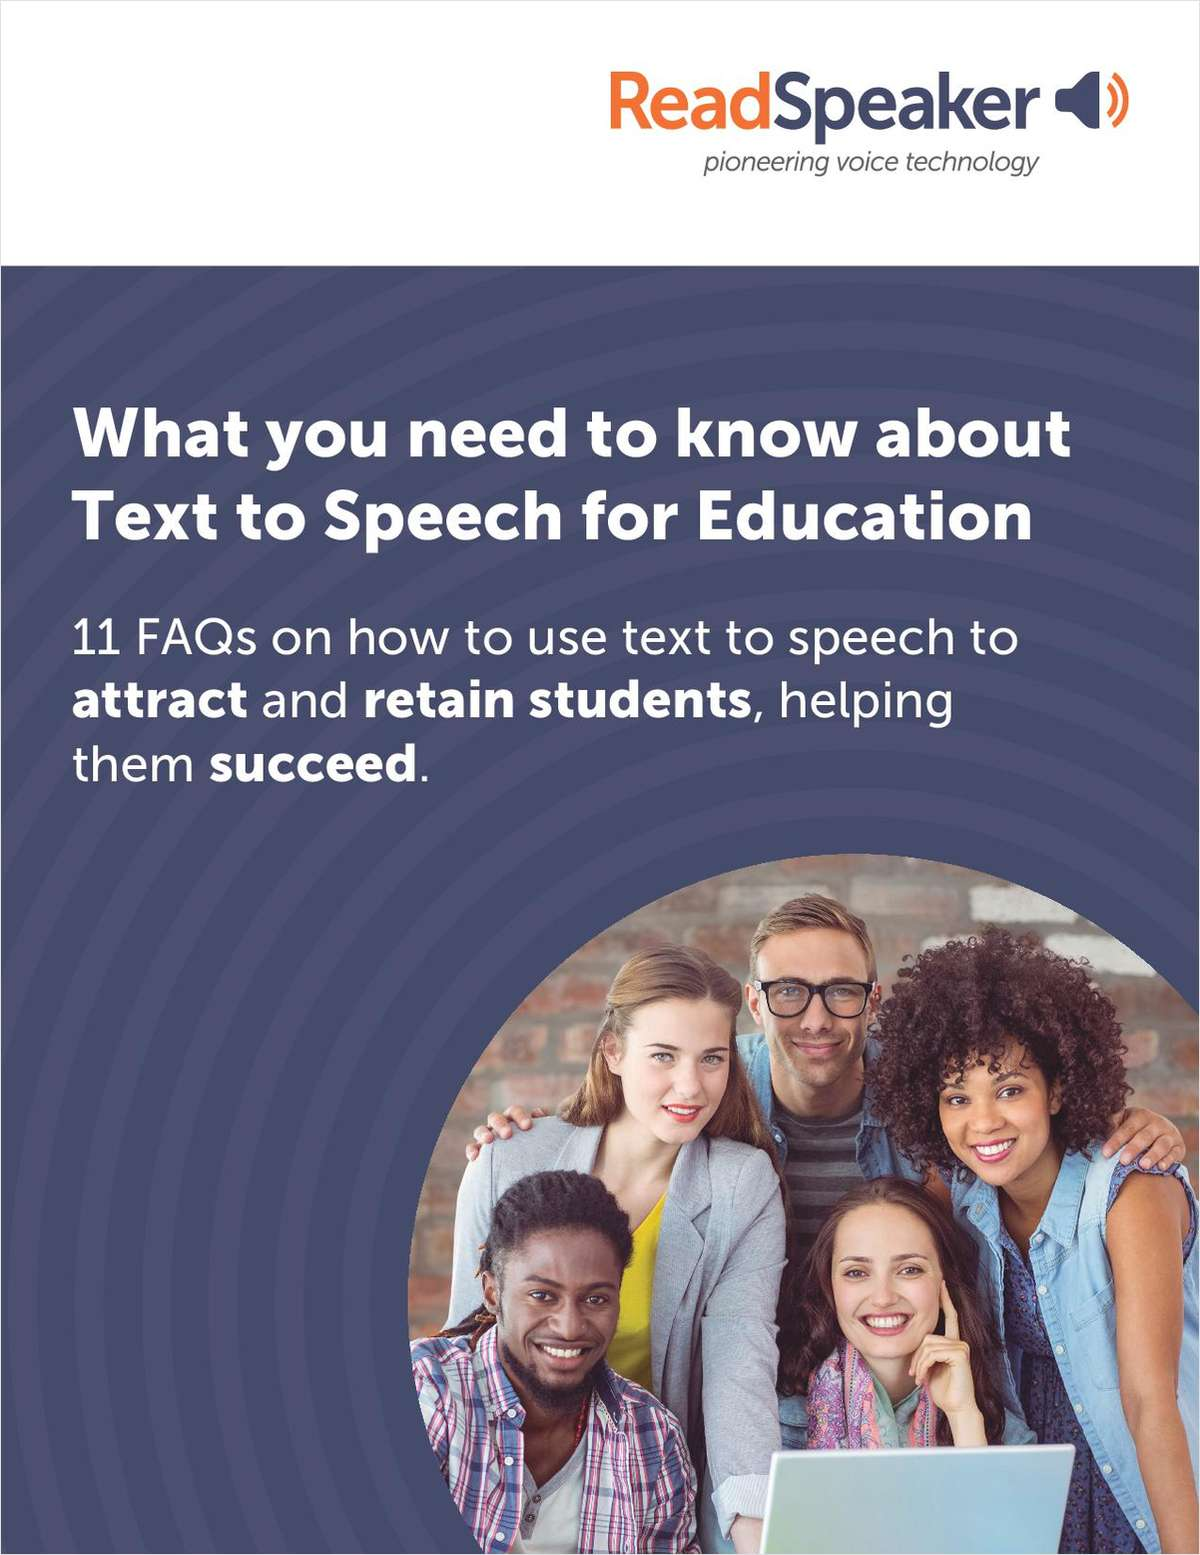 What You Need to Know About Text to Speech for Education